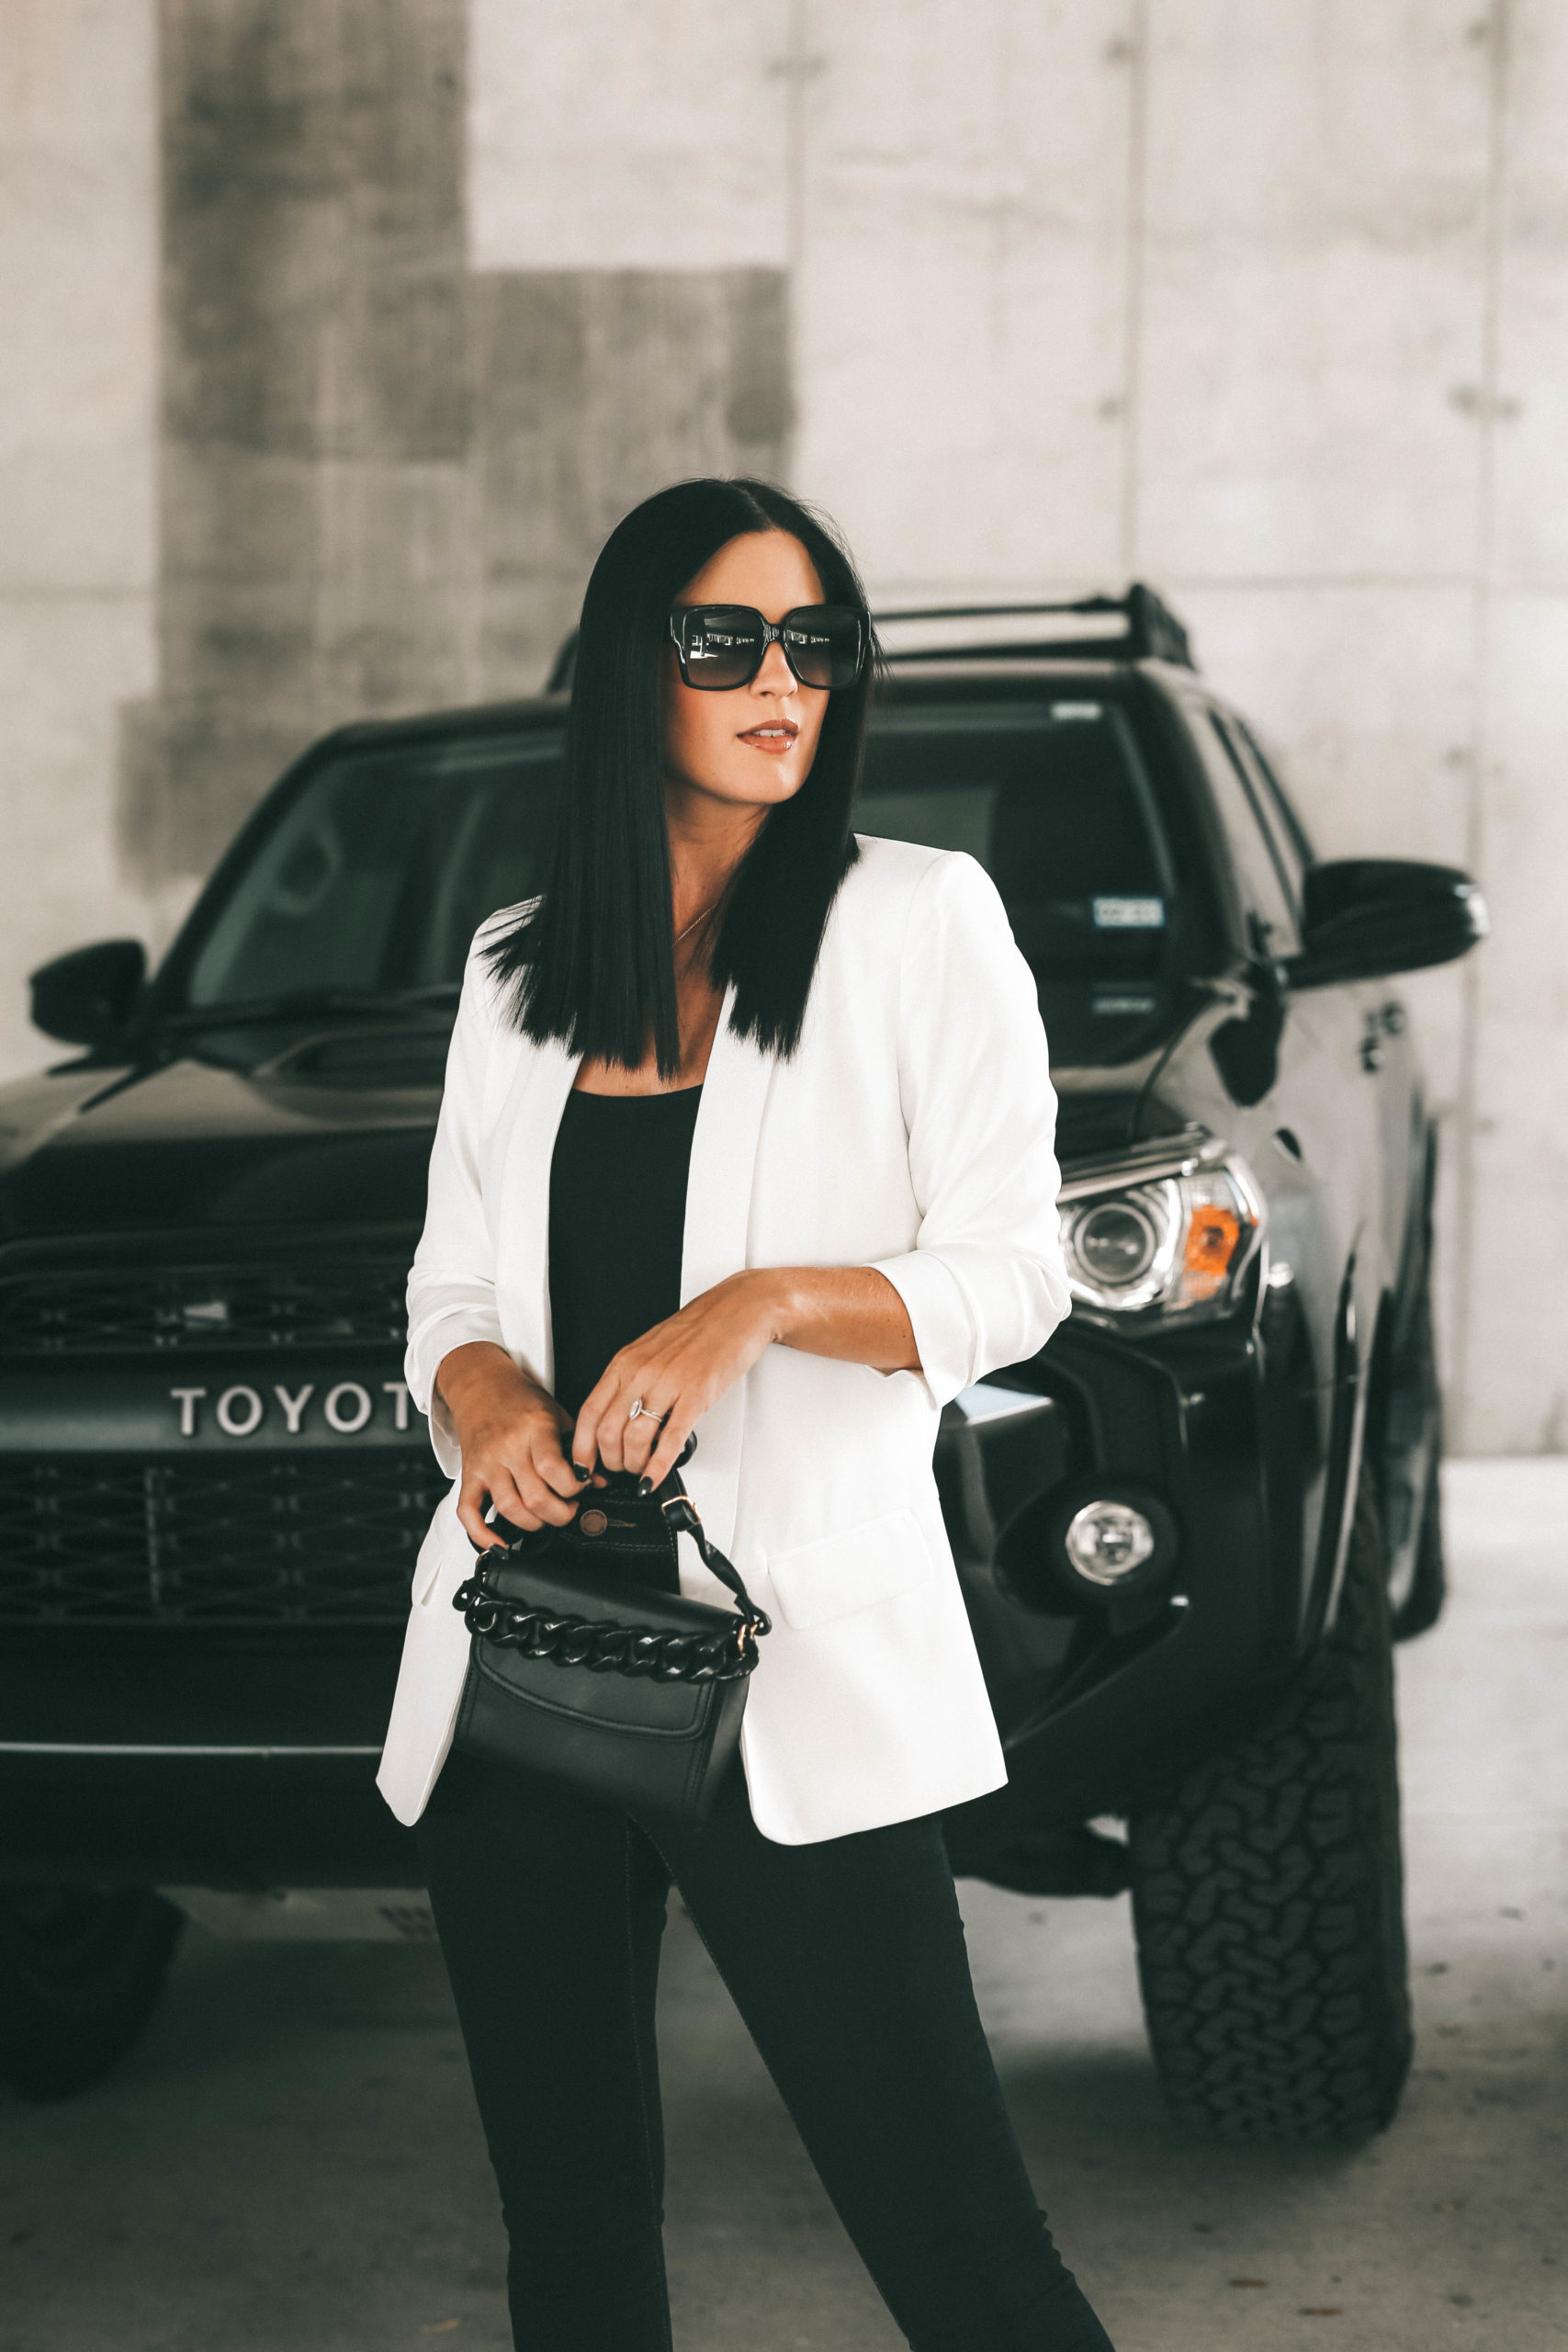 Blazer for Women by popular Austin fashion blog, Dressed to Kill: image of a woman standing in front of her black Toyota car and wearing a Walmart Scoop Scrunch Sleeve Shawl Collar Blazer, Jordache Women's Essential High Rise Super Skinny Jean, Guess Womens Simi Adjustable Straps V-Back Bodysuit, black frame sunglasses, and holding a black purse.